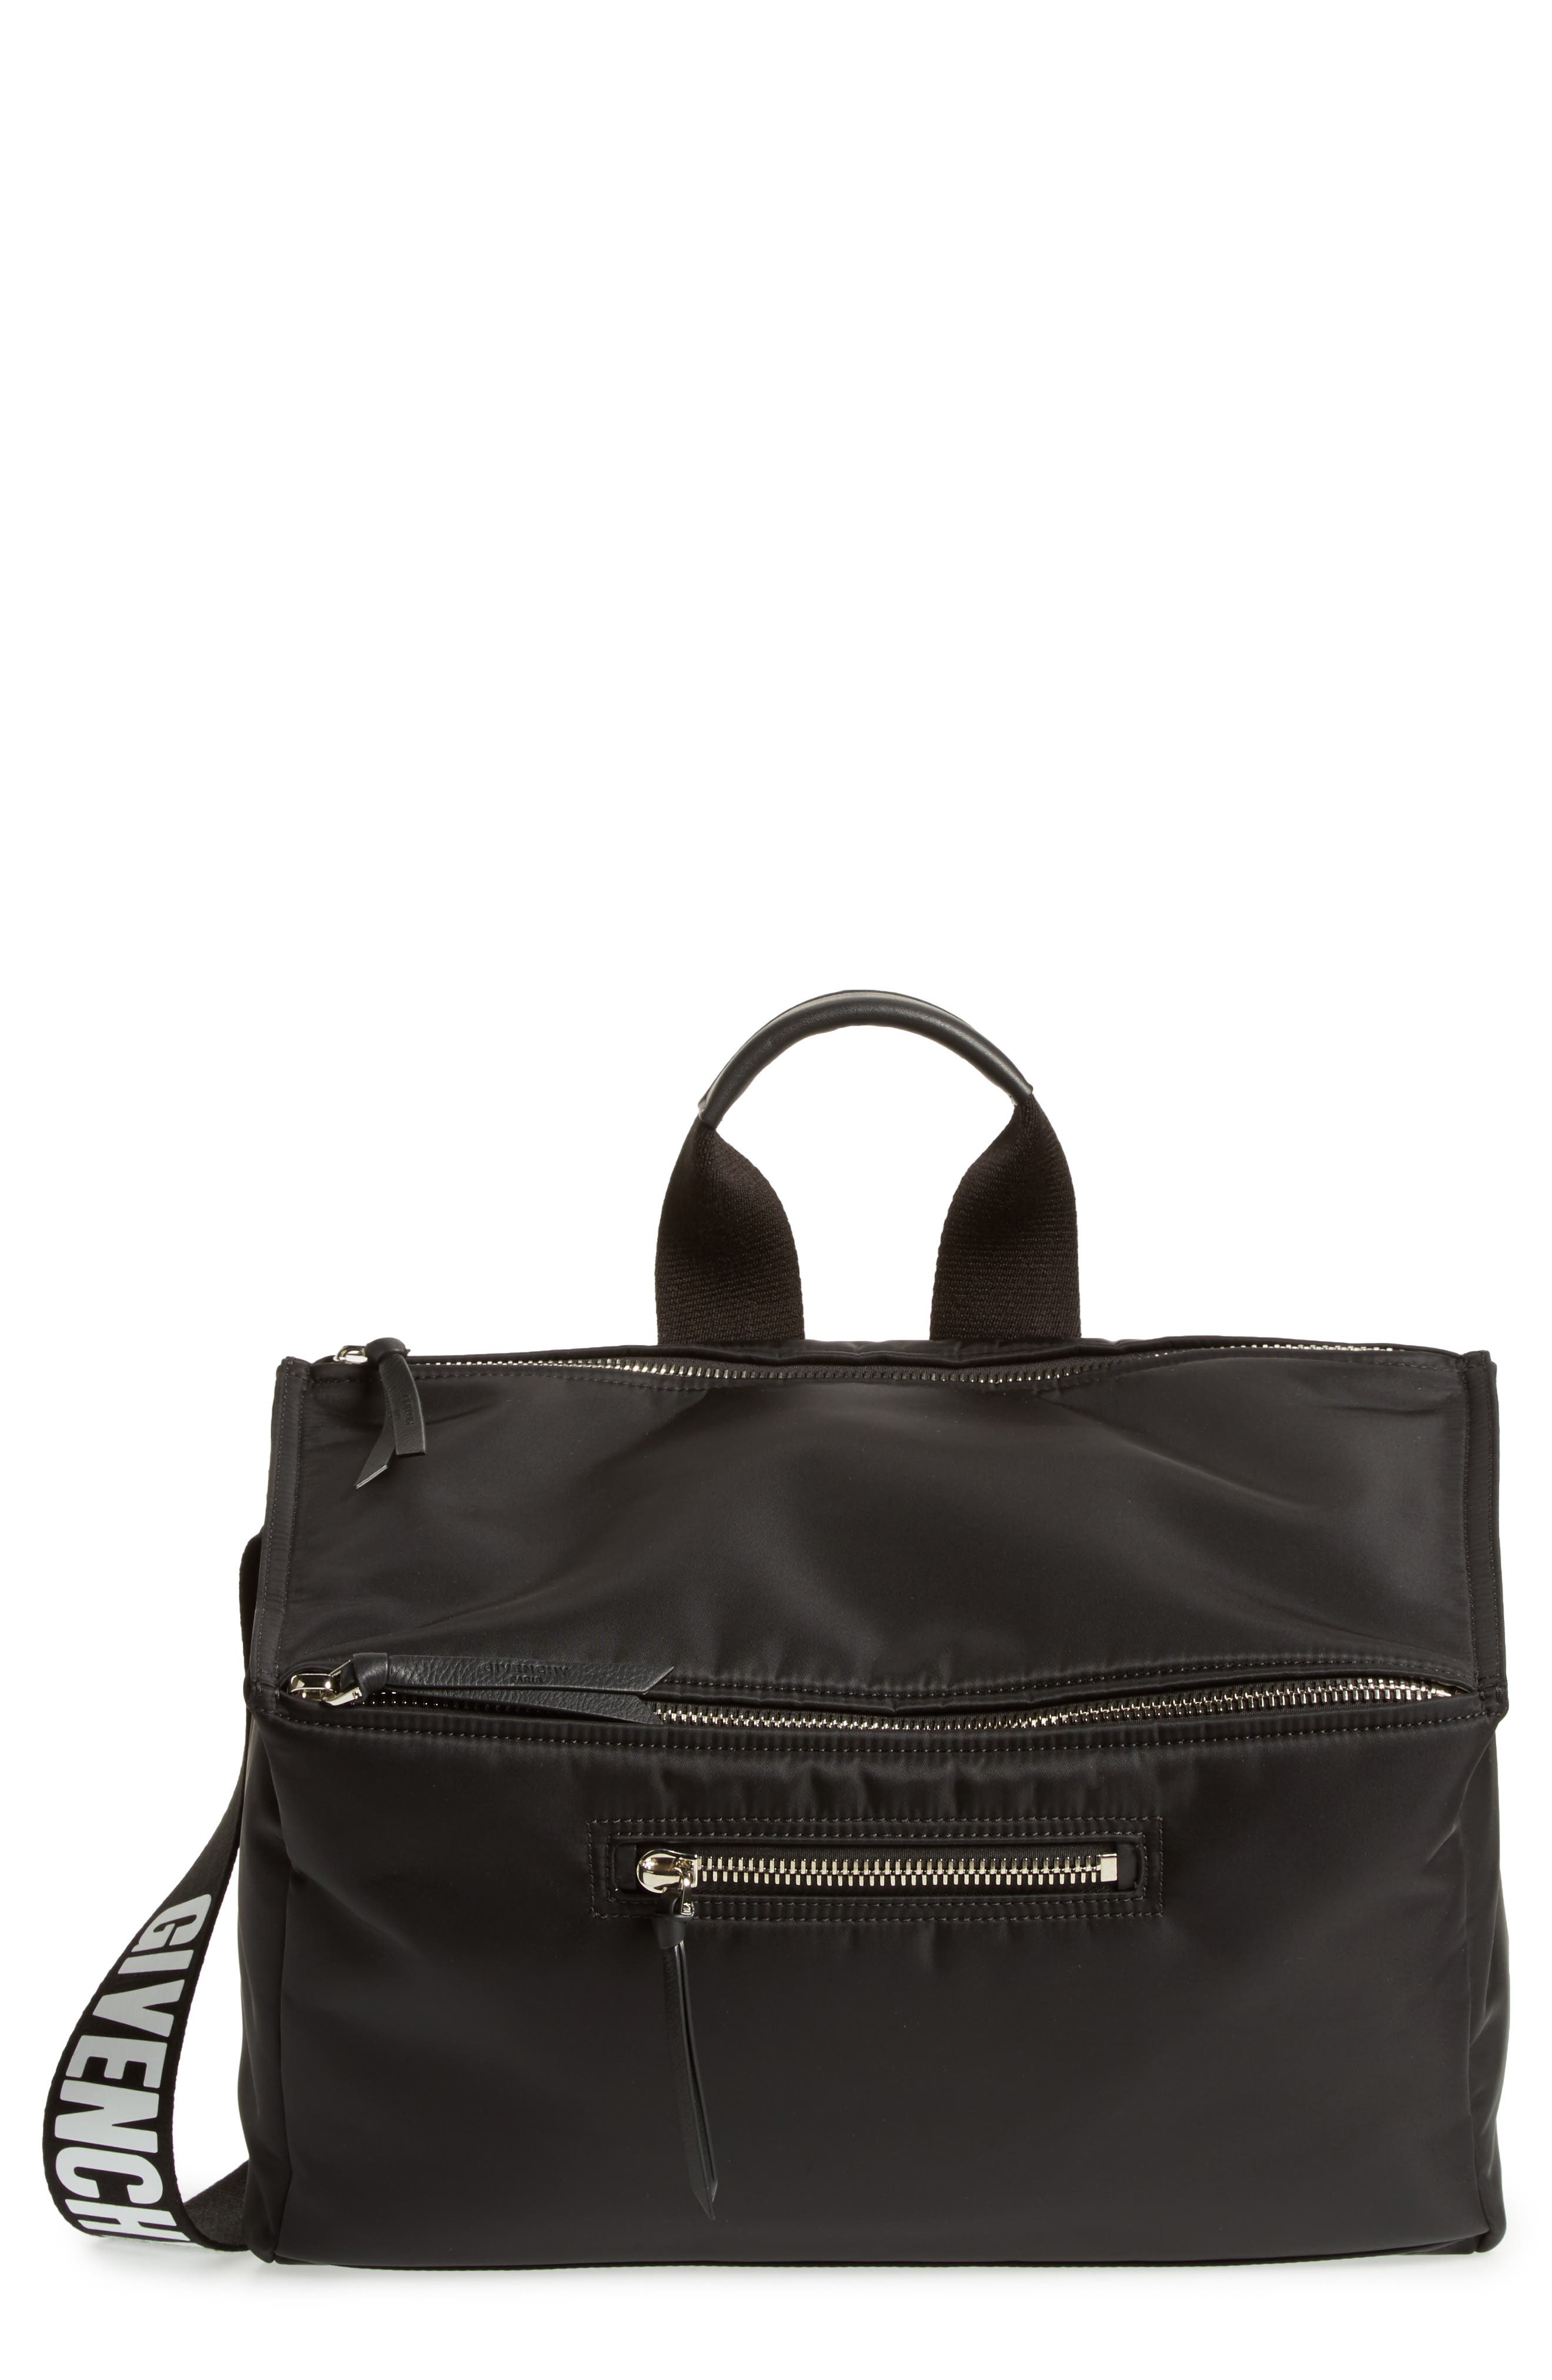 Main Image - Givenchy Paris Pandora Shoulder Bag